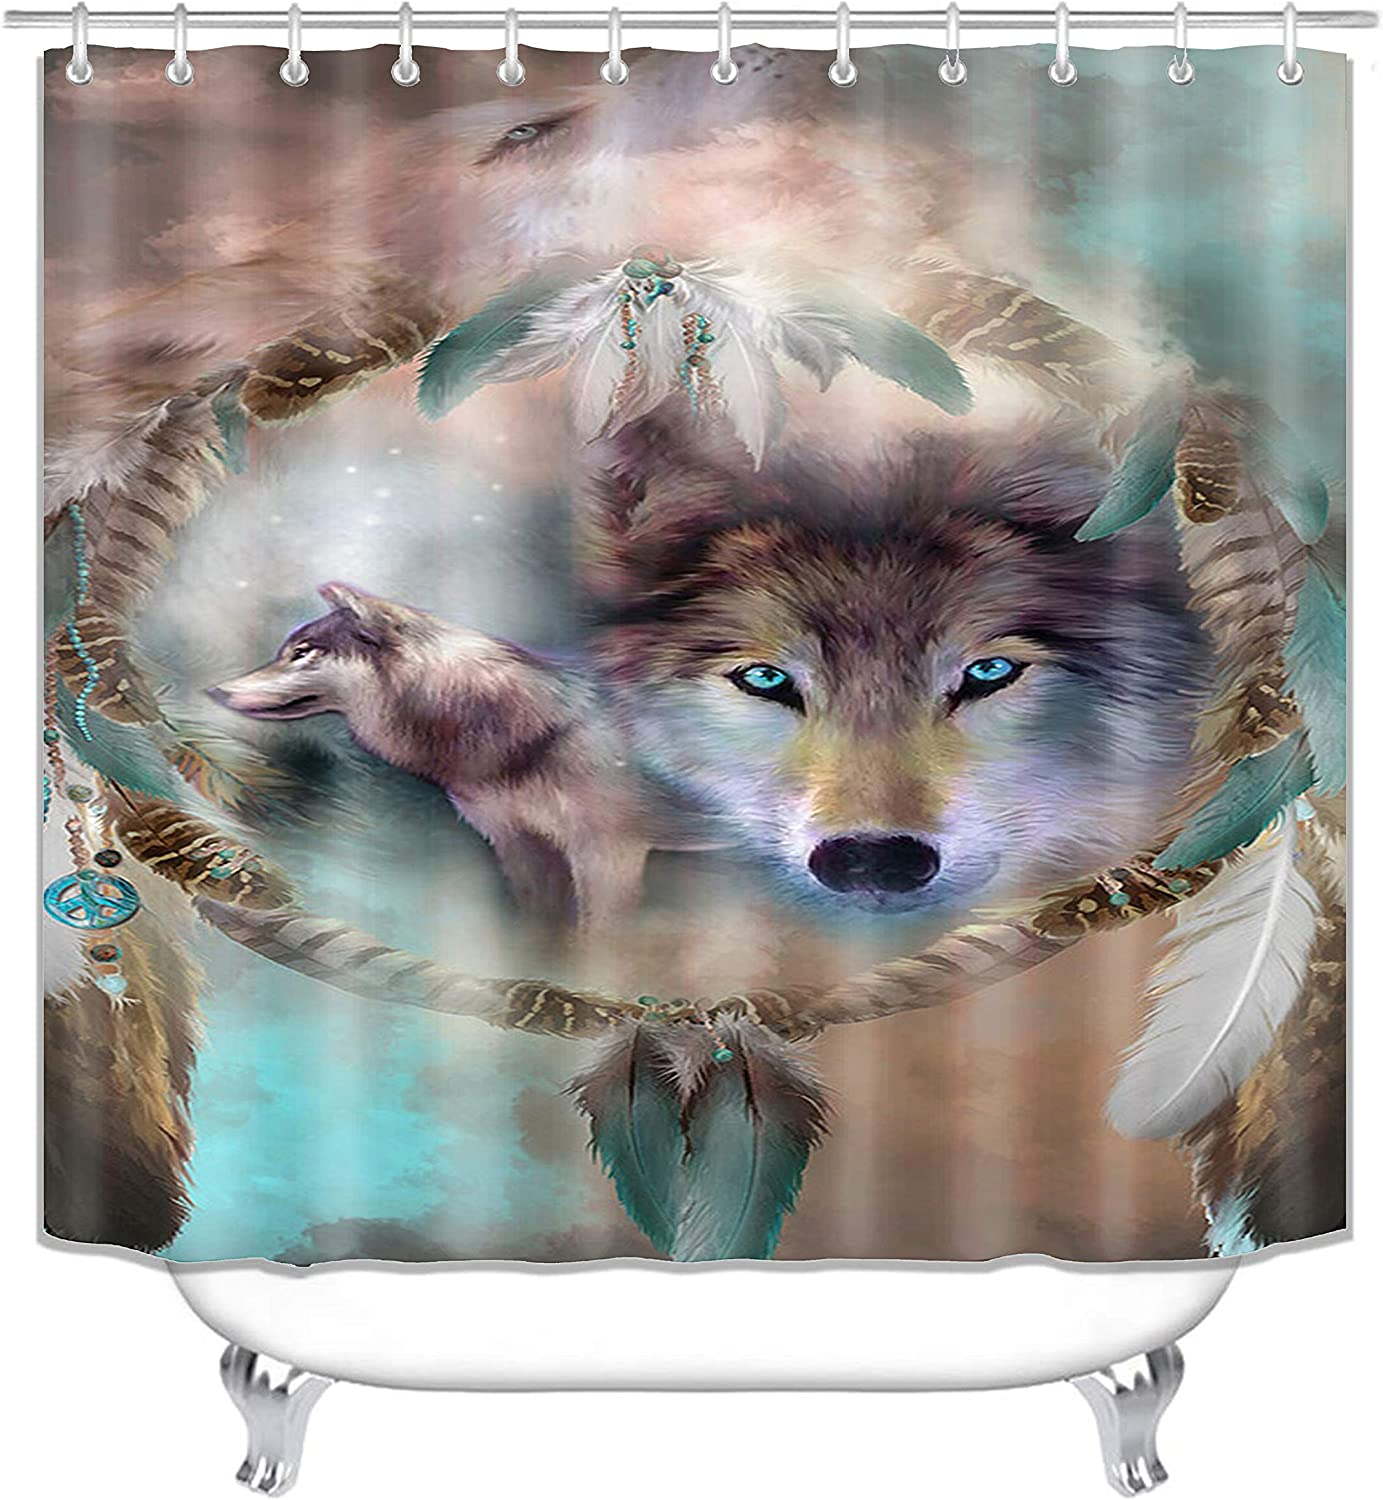 Super Soft Bathroom Rugs Bath Carpet Toilet Mat Toilet Lid Cover Style 1 wtih 12 Hooks Fashion/&Man 4PCS//Set Cool 3D Wolf Shower Curtain Polyester Fabric Waterproof Bath Curtain 72x72in